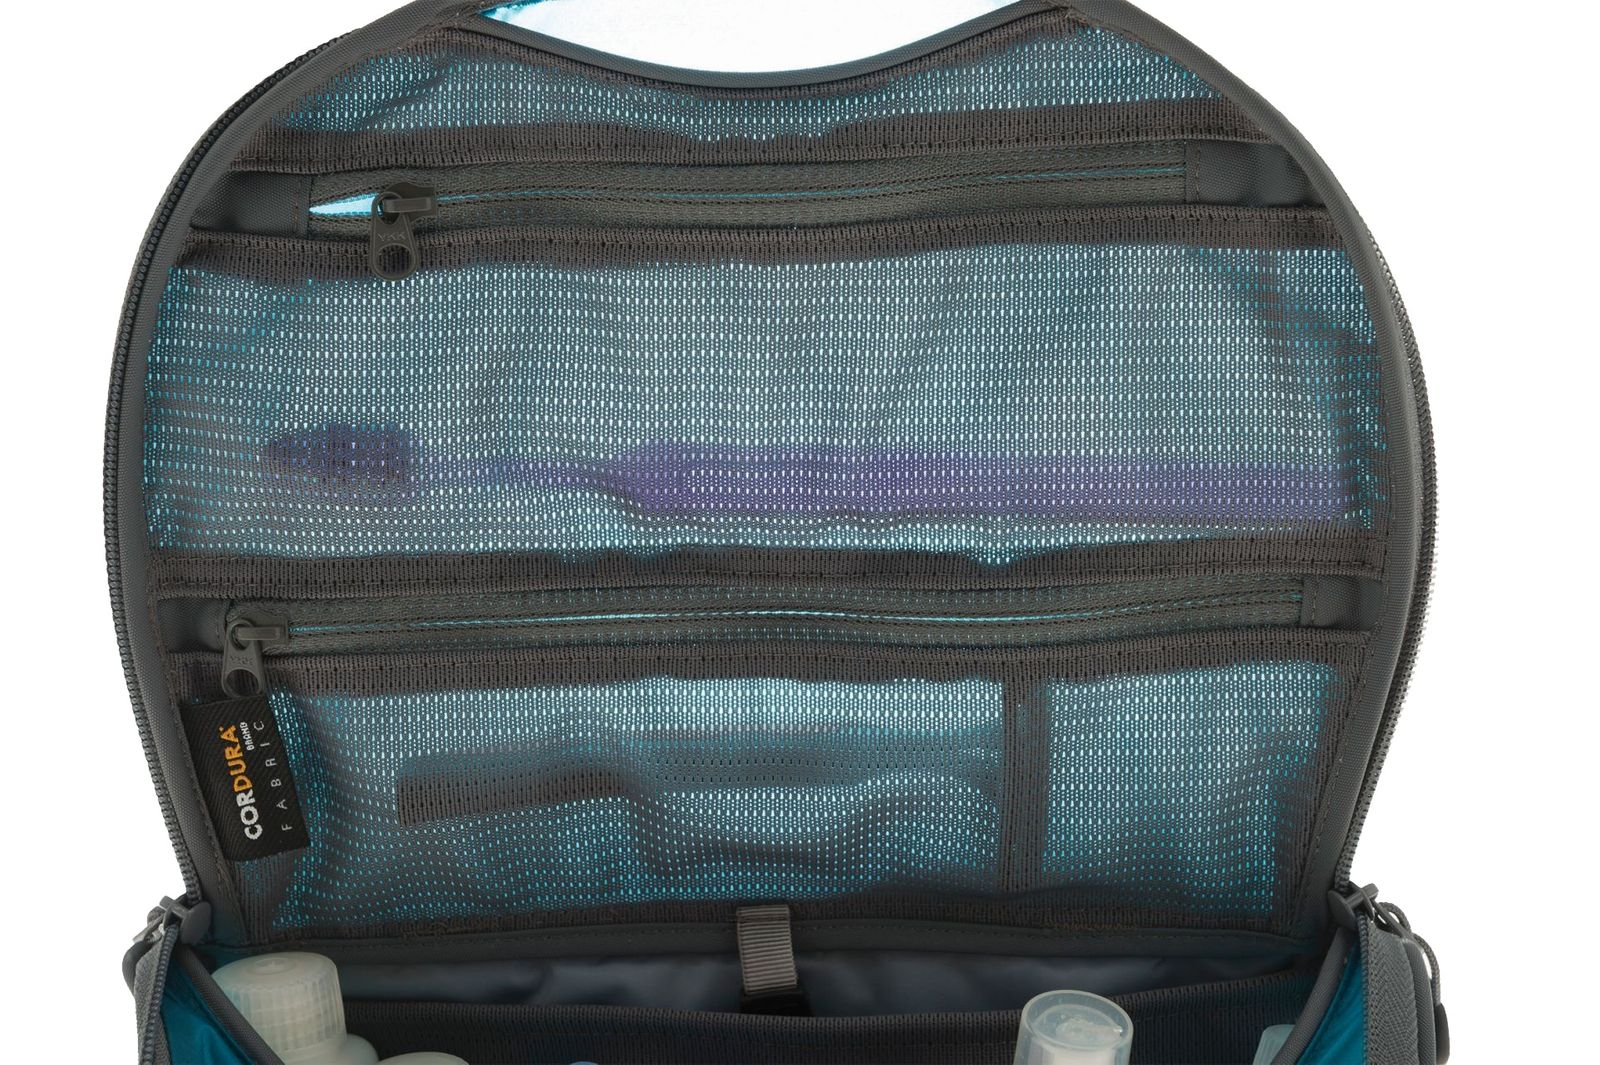 ... Summit TravellingLight Hanging Toiletry Bag Small Blue   Grey   26 919790489eaa7